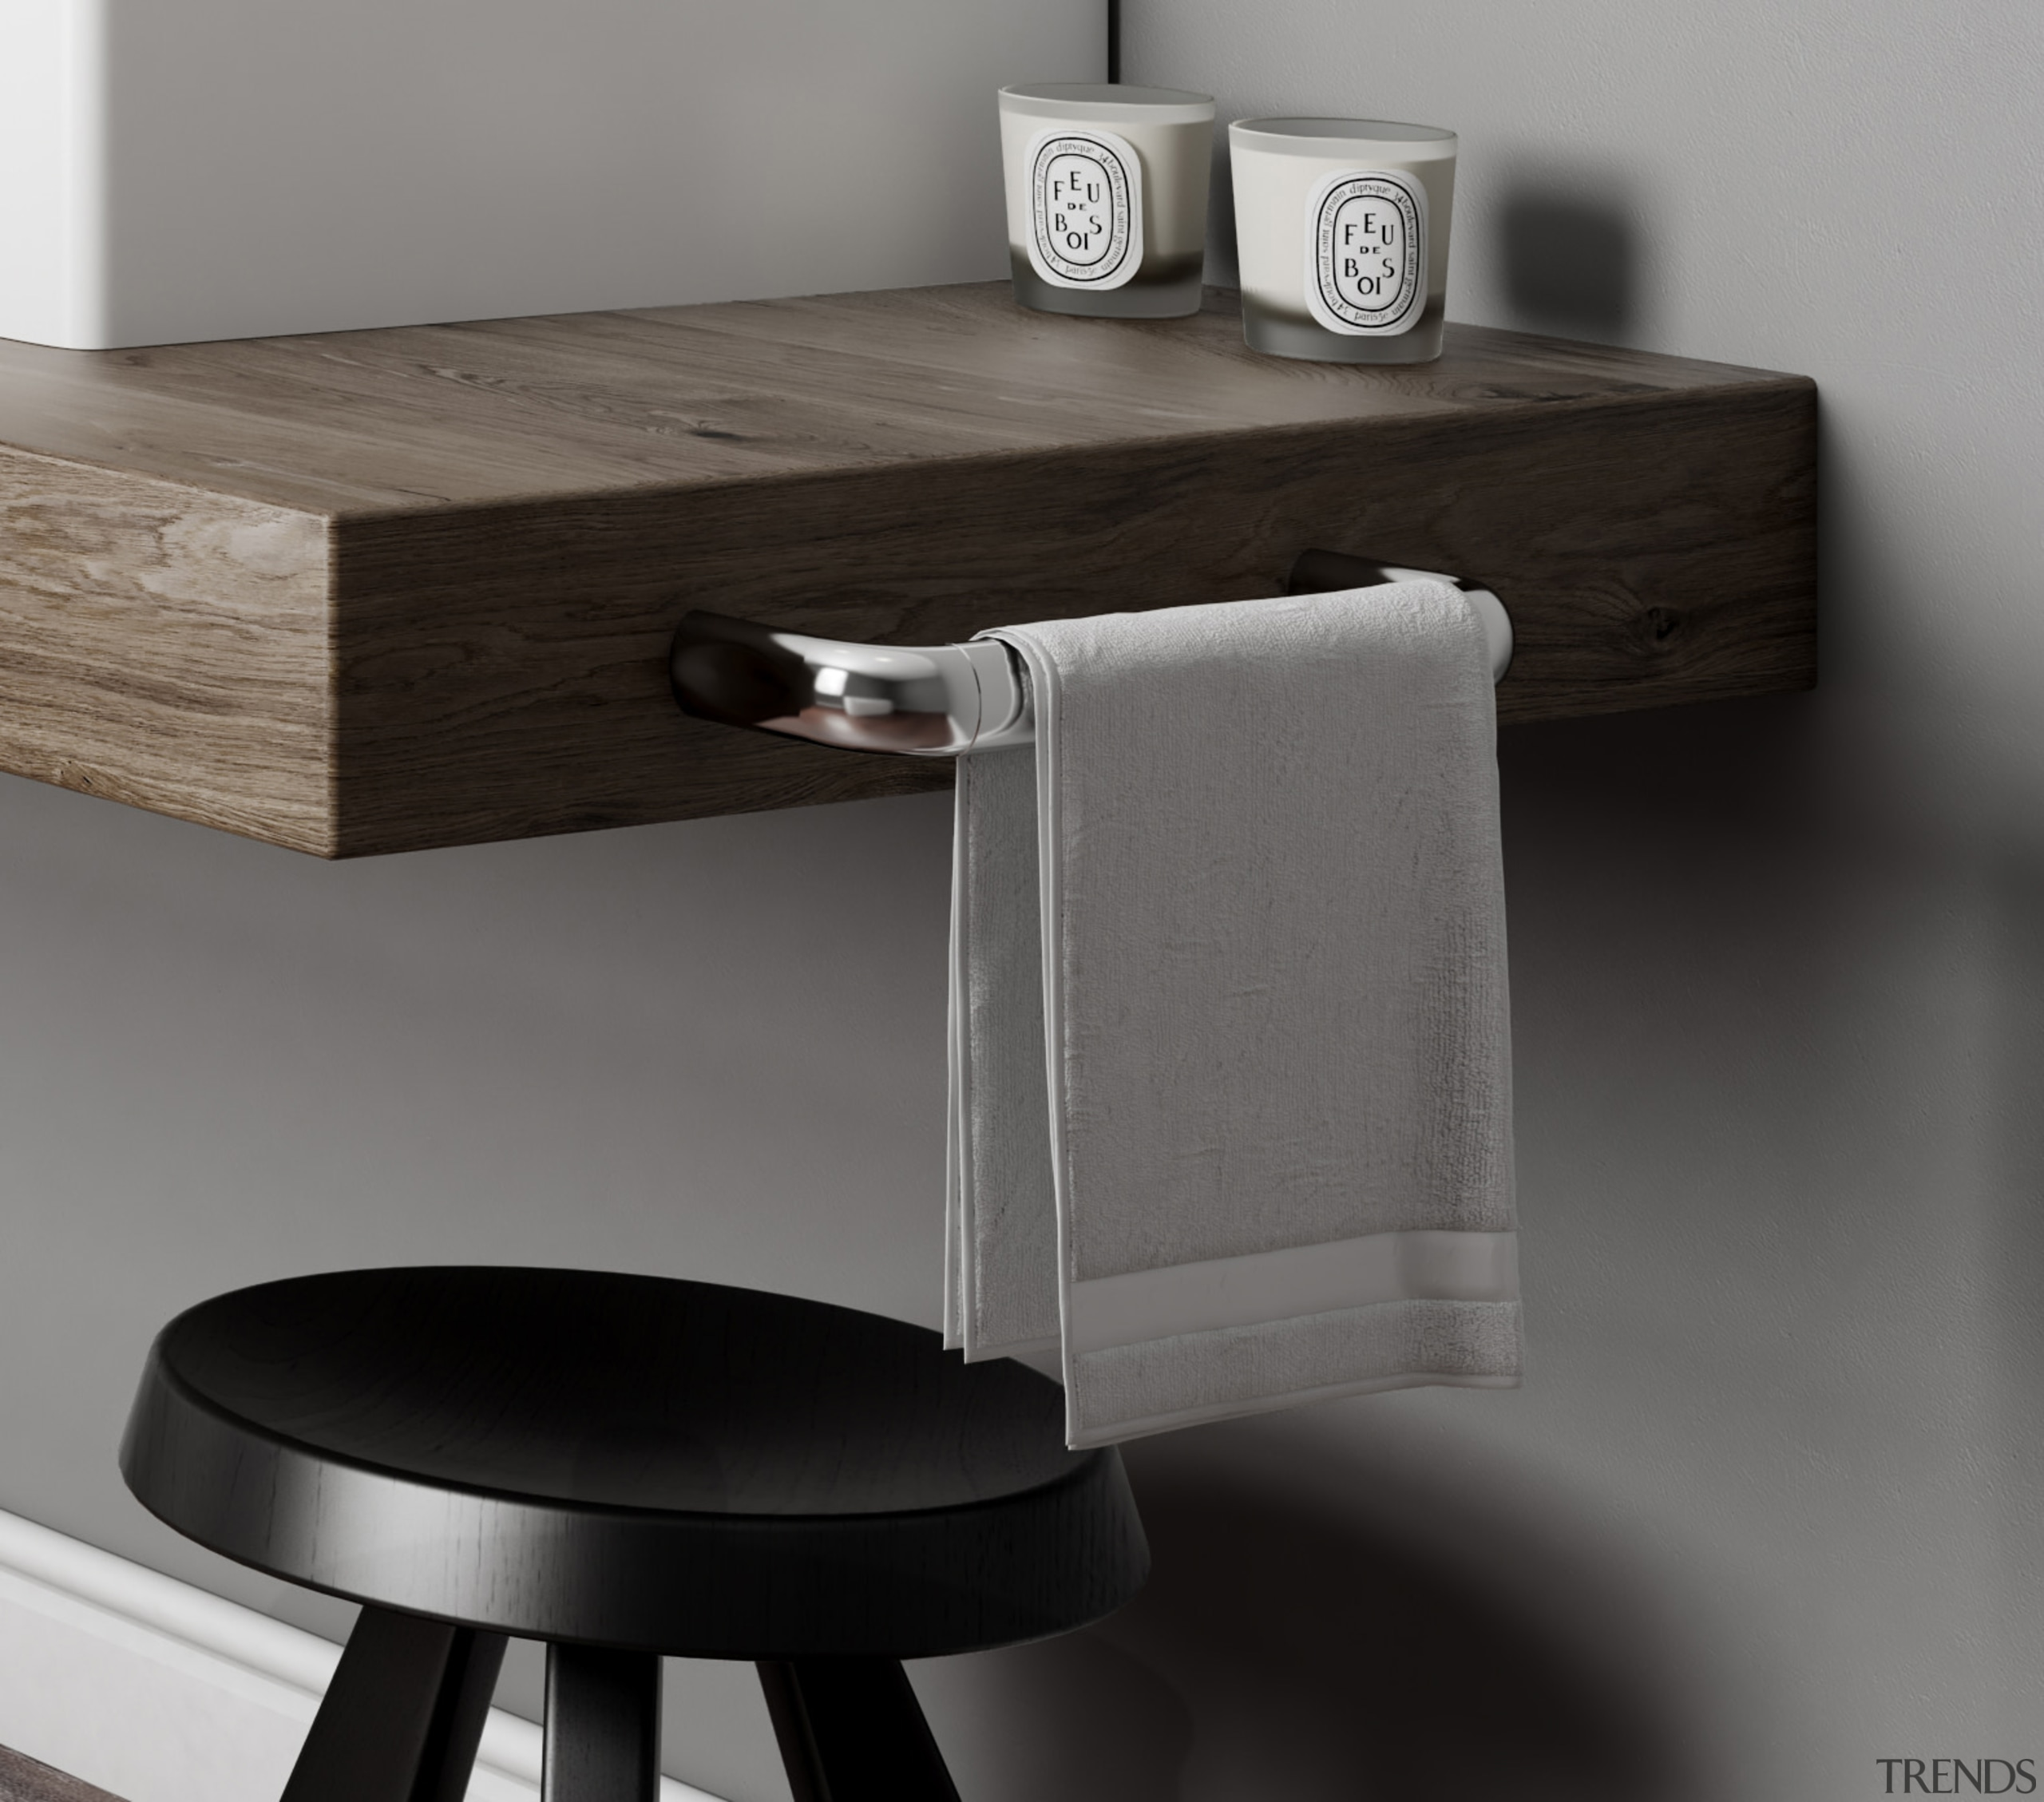 • 5 year warranty• Italian design• Solid Brass angle, desk, furniture, product, table, tap, gray, black